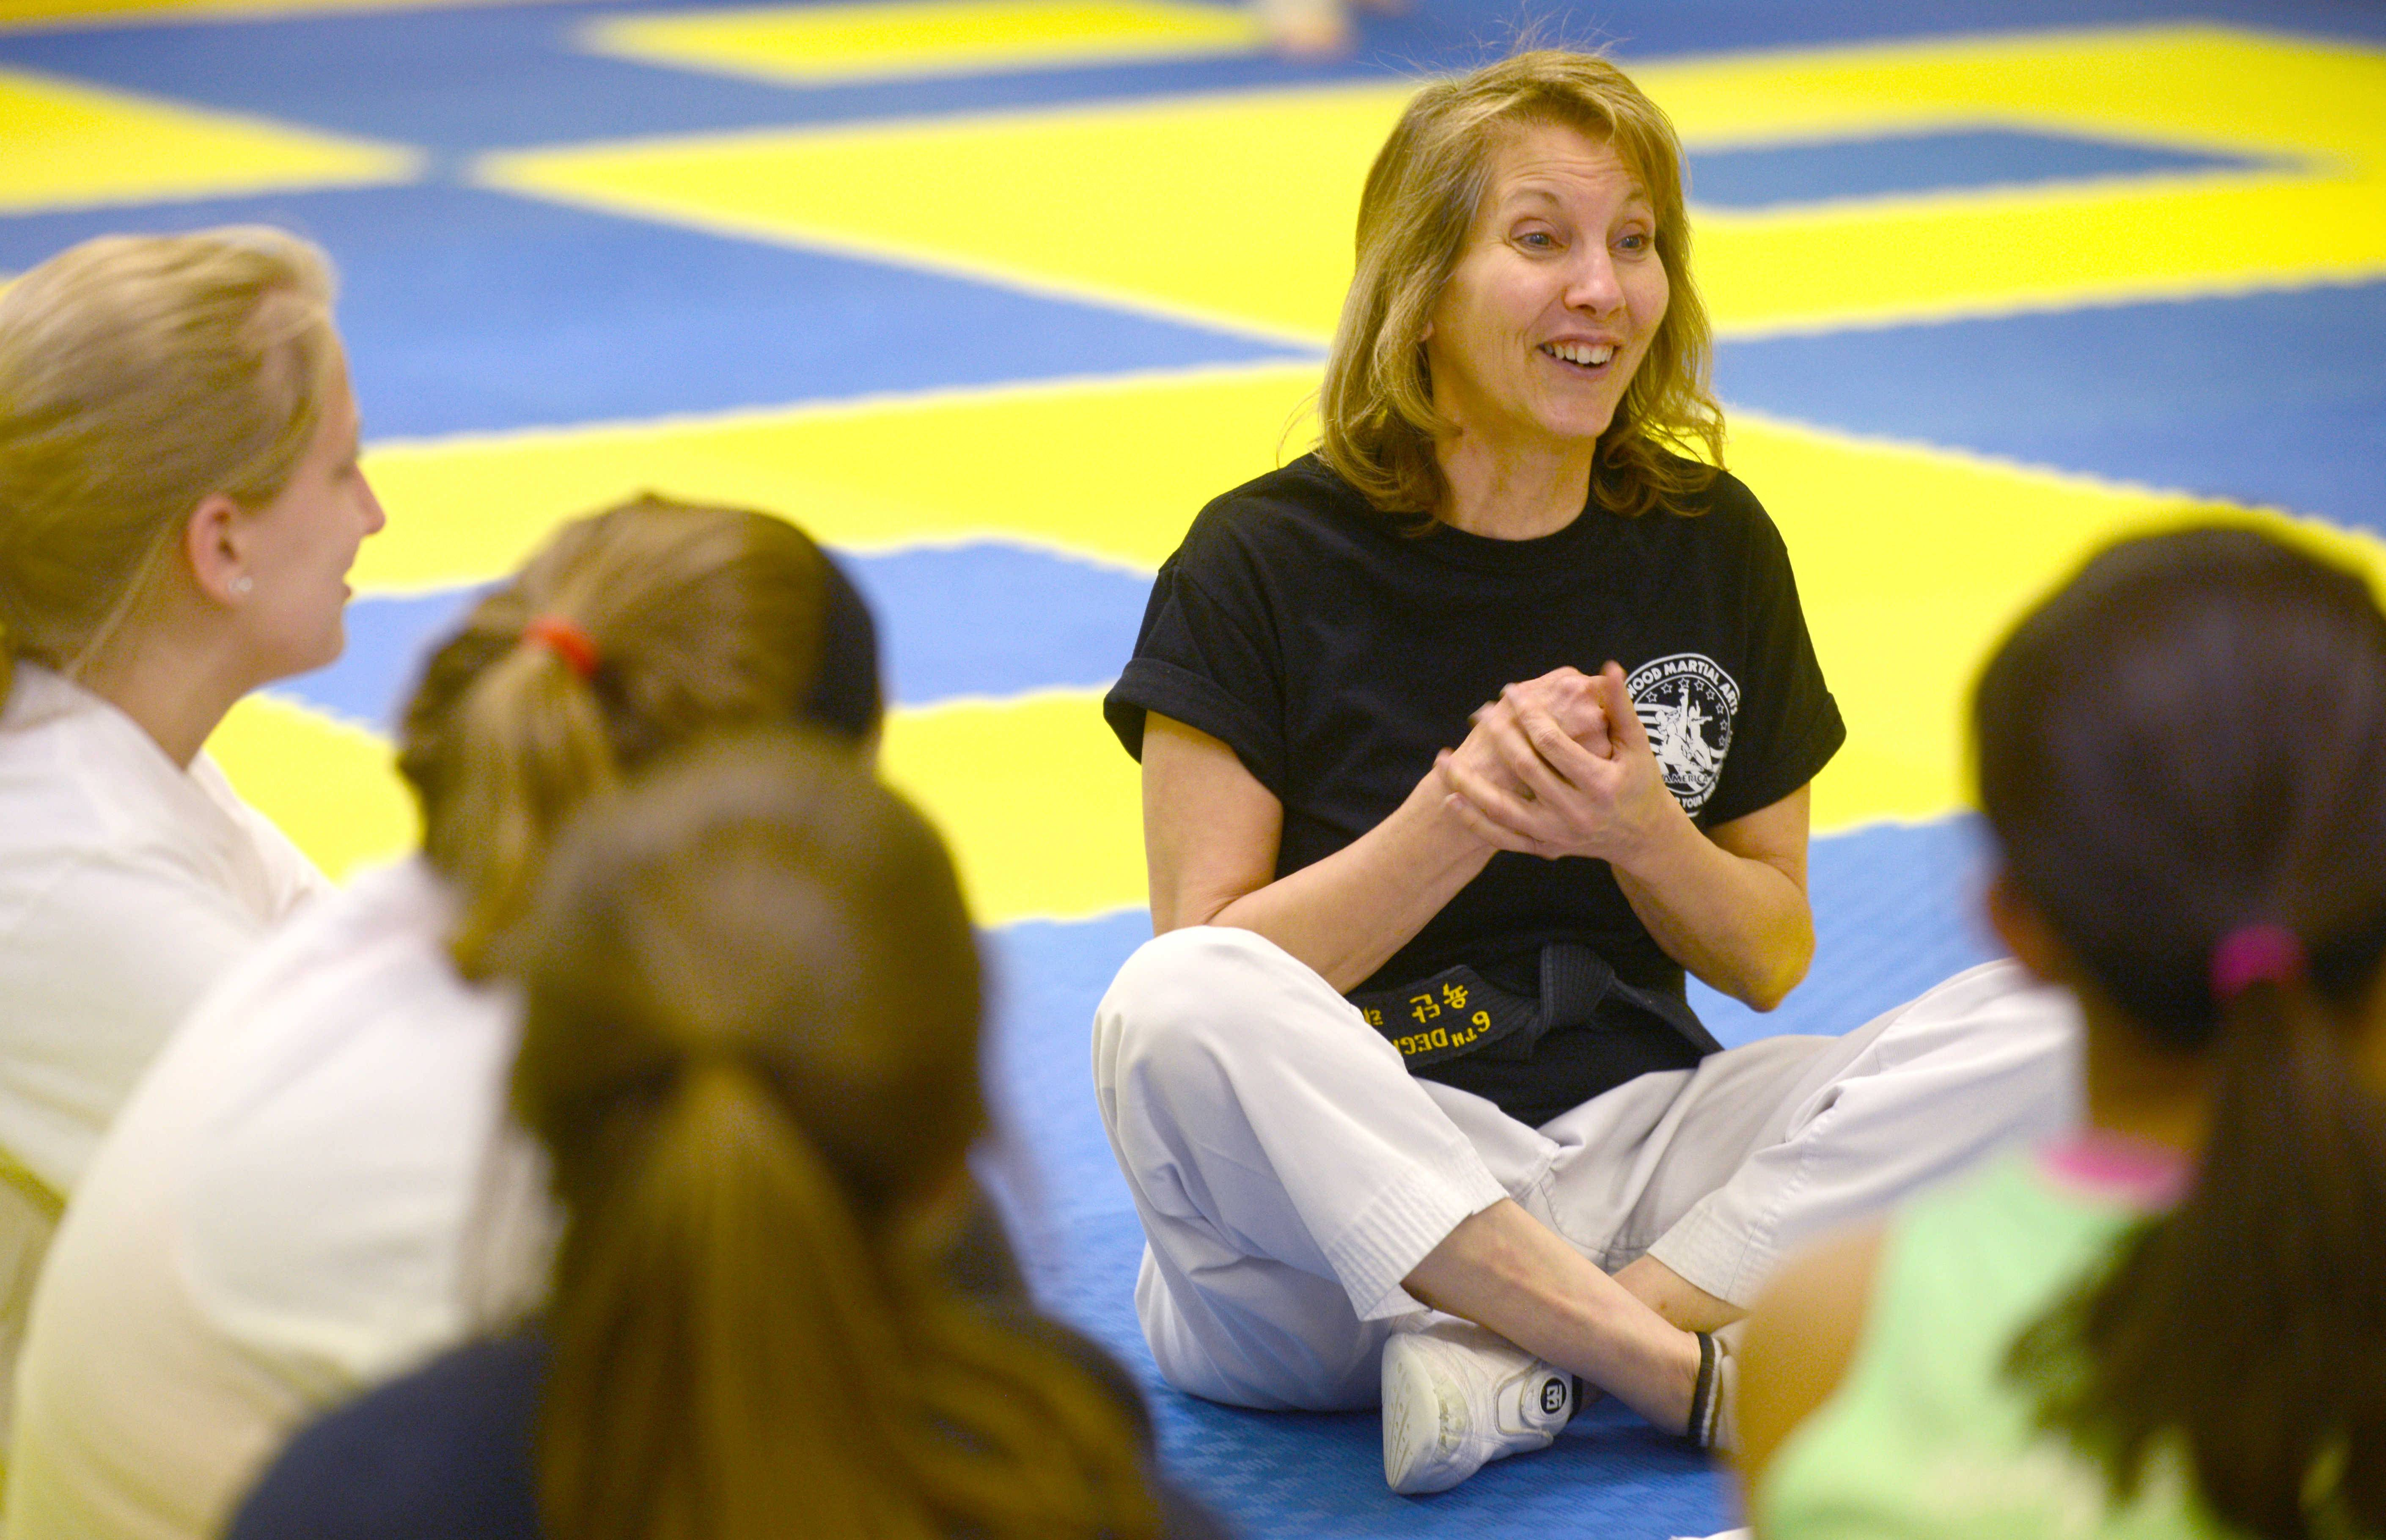 Instructor Jan Wood shares her enthusiasm for using various body limbs as weapons for self-defense.